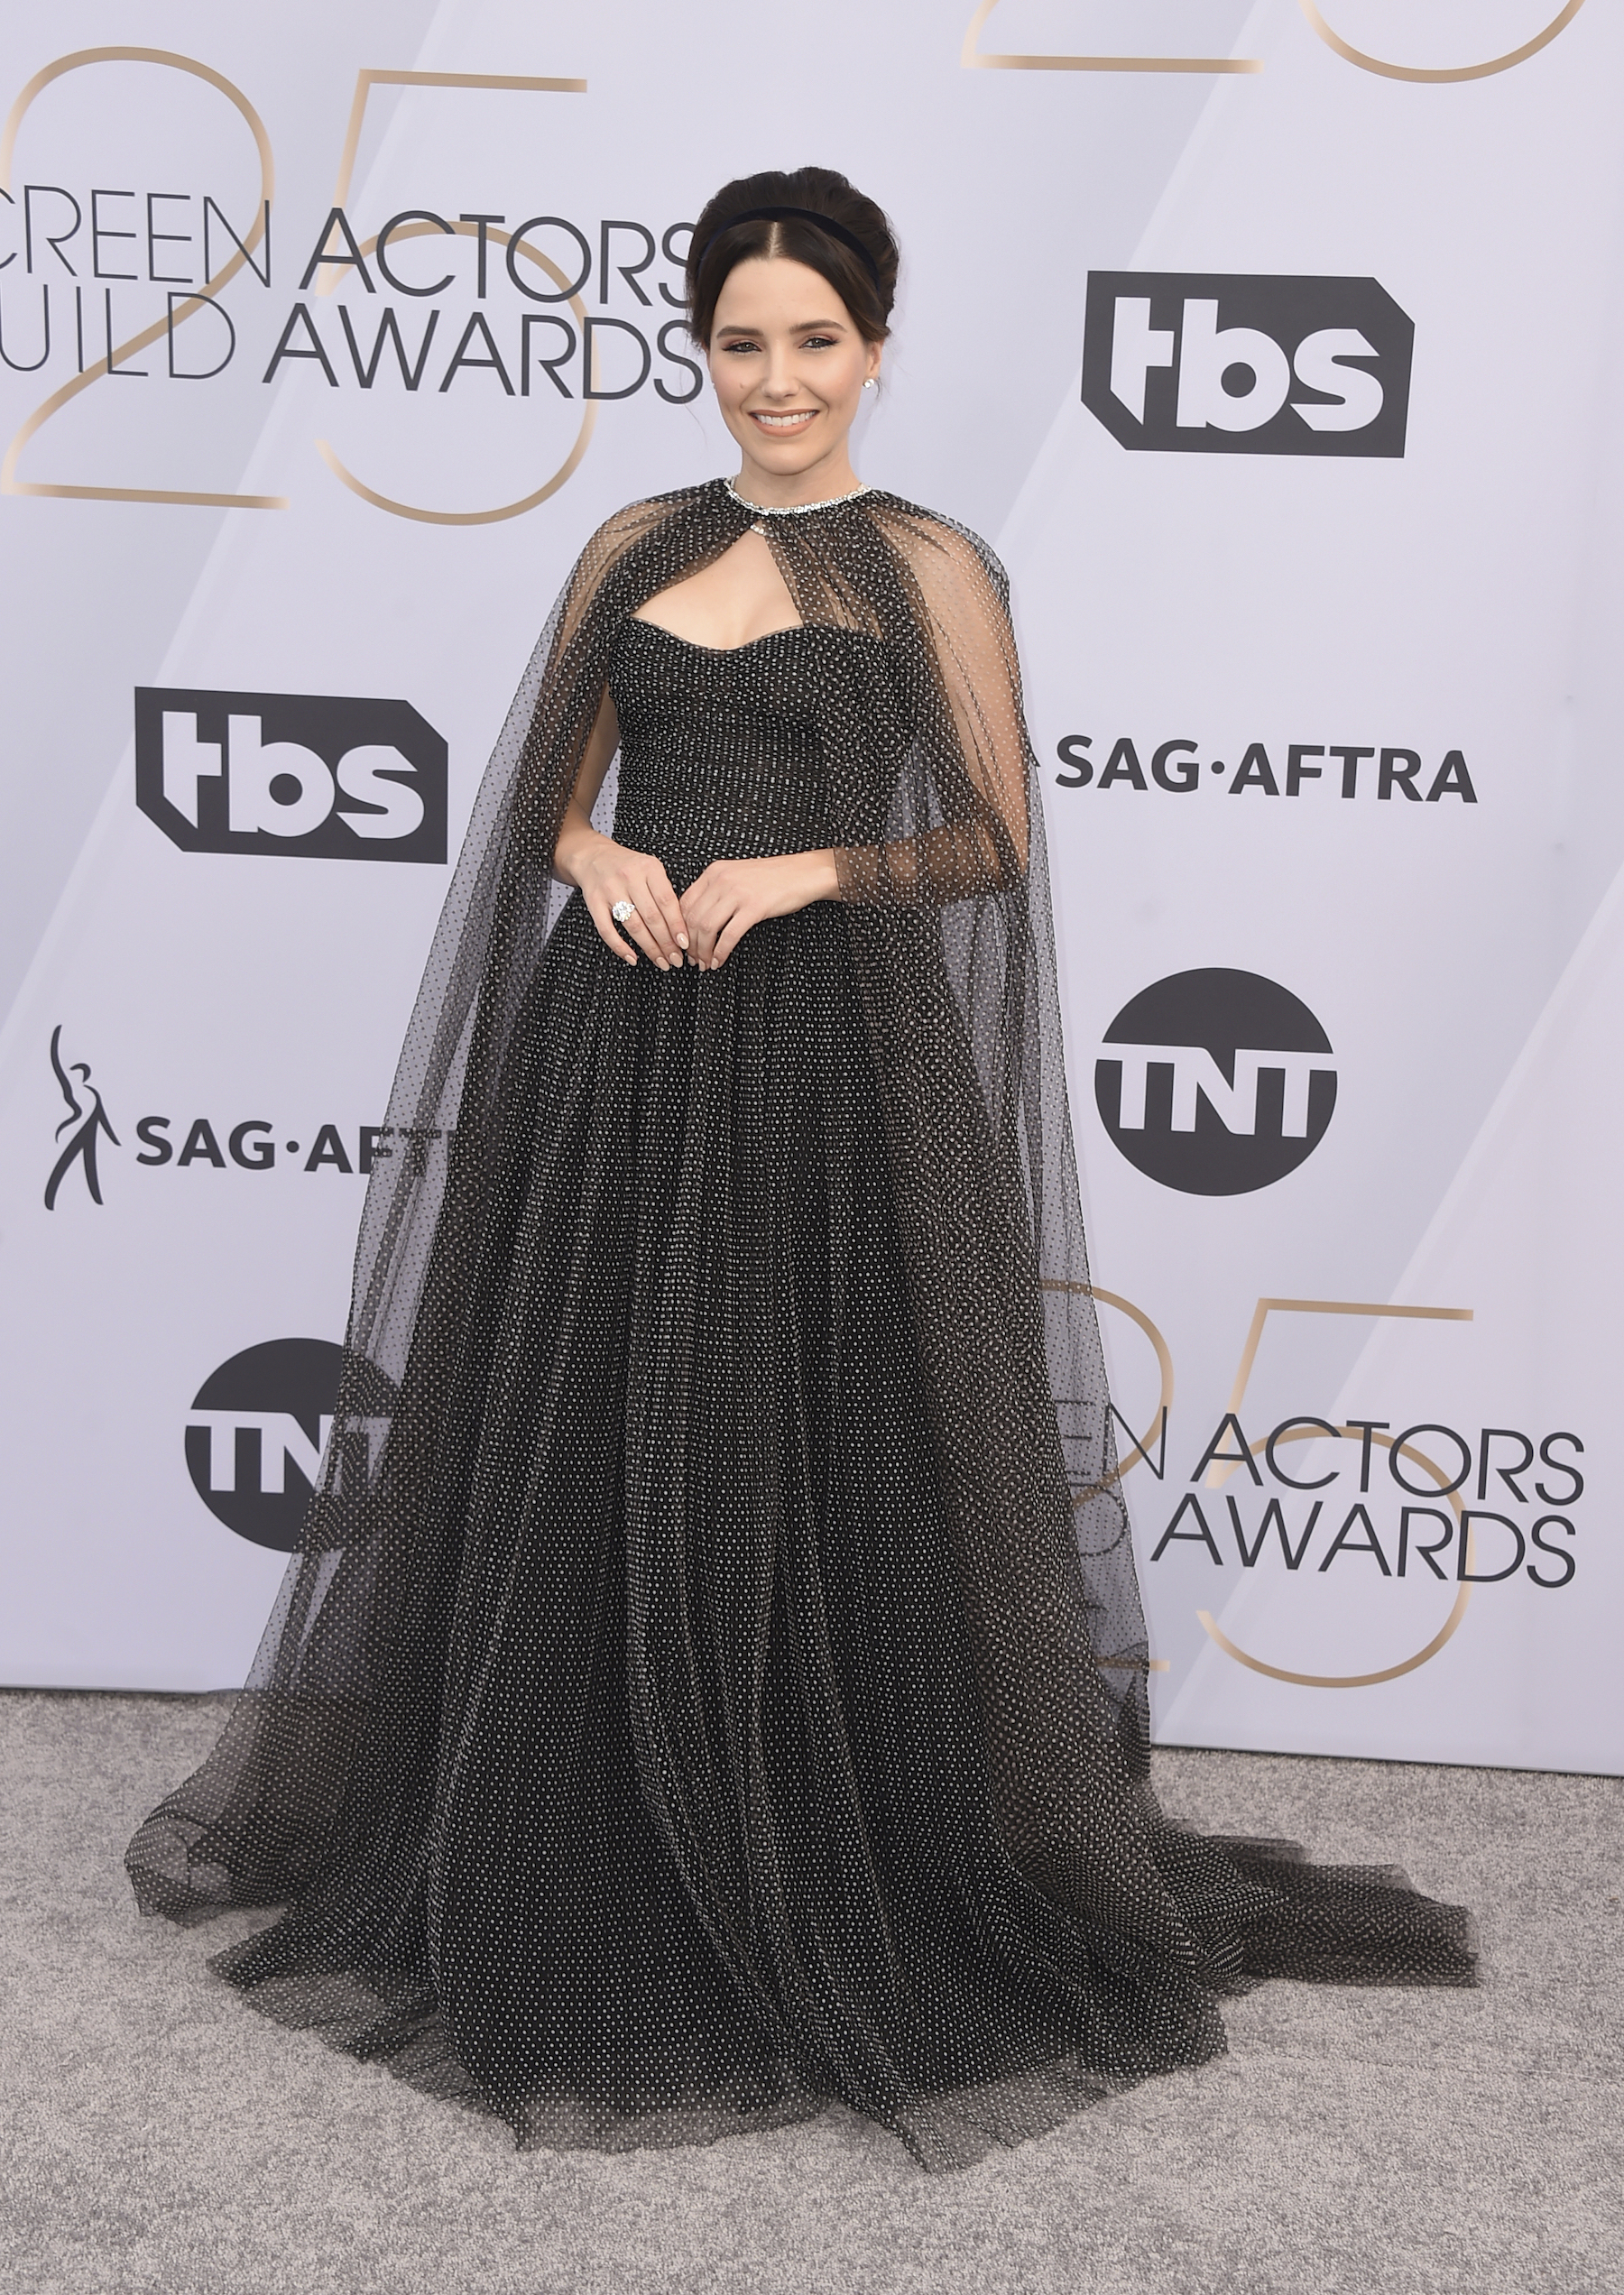 <div class='meta'><div class='origin-logo' data-origin='AP'></div><span class='caption-text' data-credit='Jordan Strauss/Invision/AP'>Sophia Bush arrives at the 25th annual Screen Actors Guild Awards at the Shrine Auditorium & Expo Hall on Sunday, Jan. 27, 2019, in Los Angeles.</span></div>